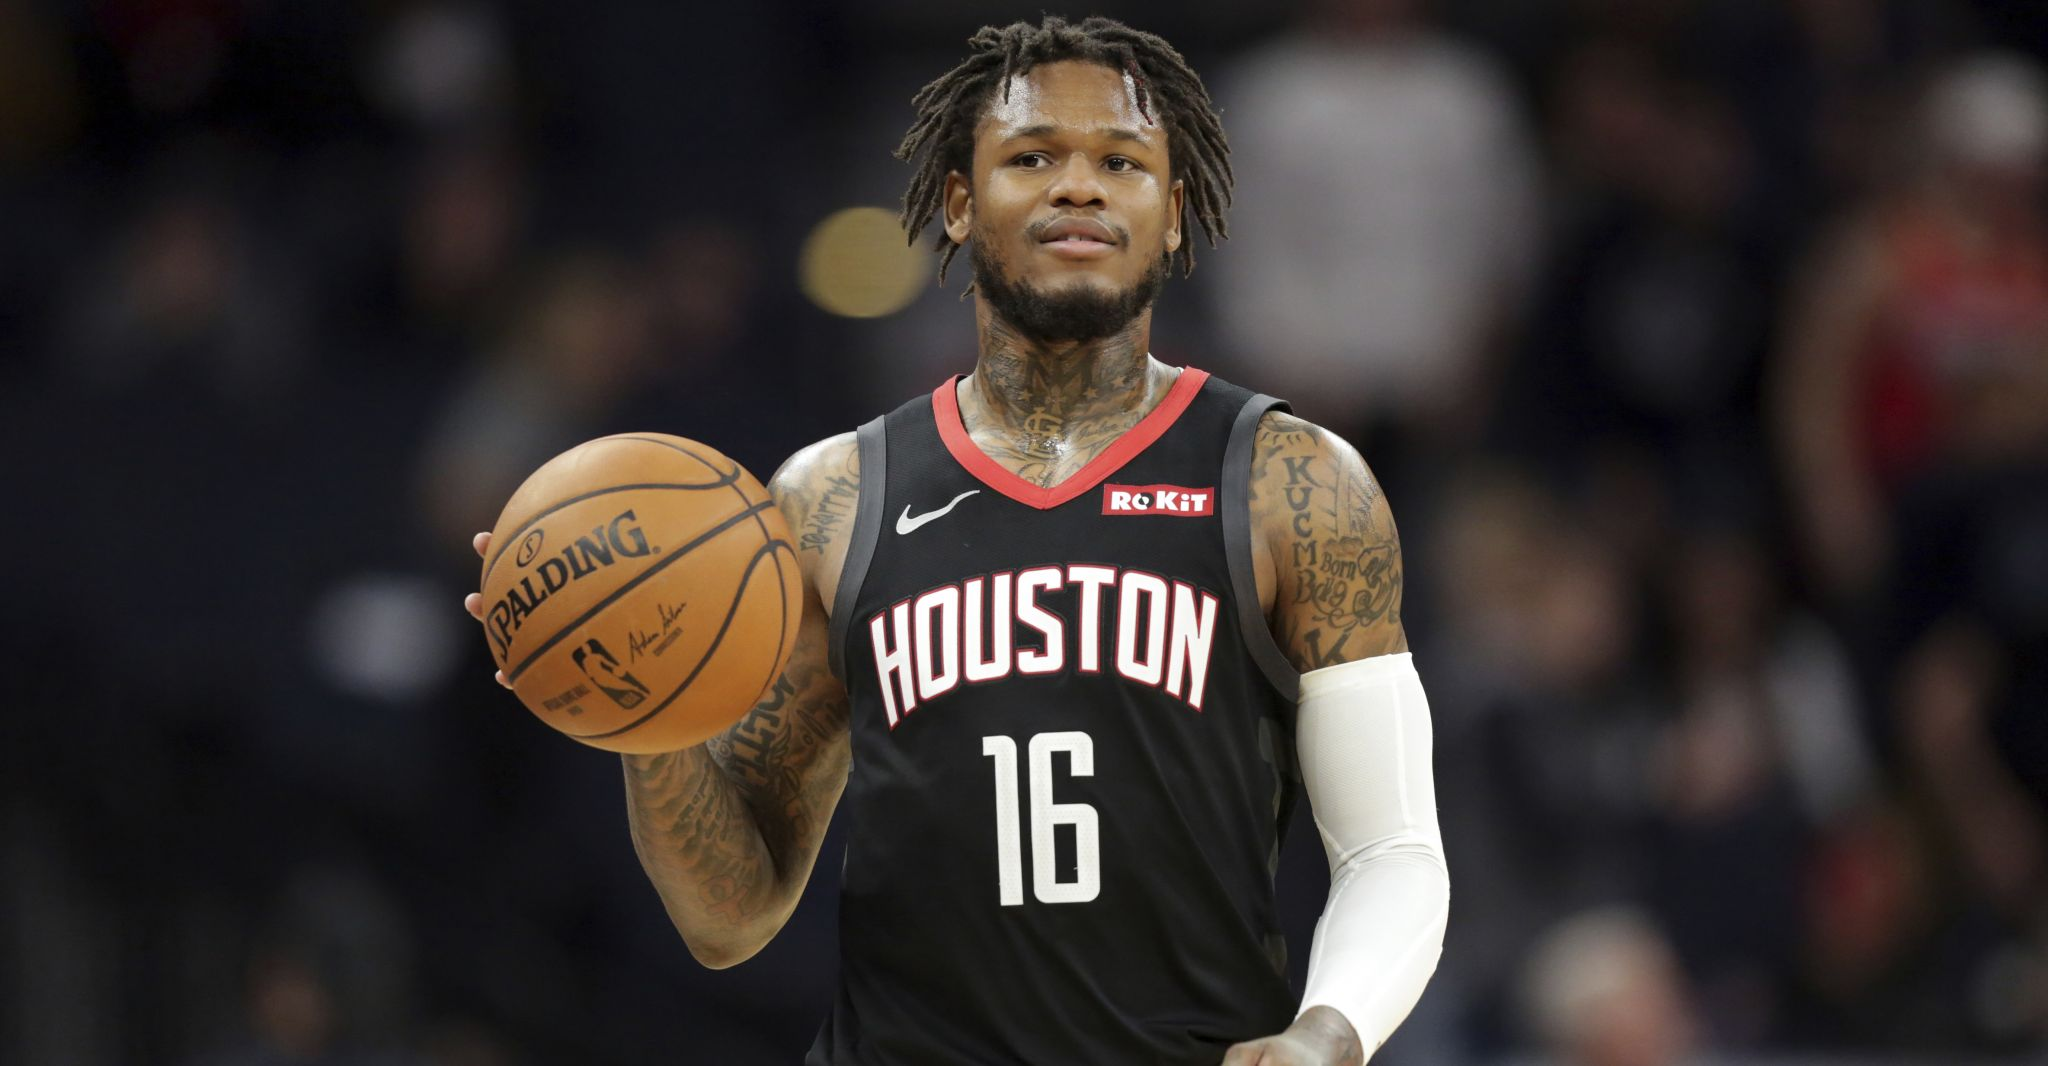 Ben McLemore likely to return to bench role for Rockets - Houston Chronicle